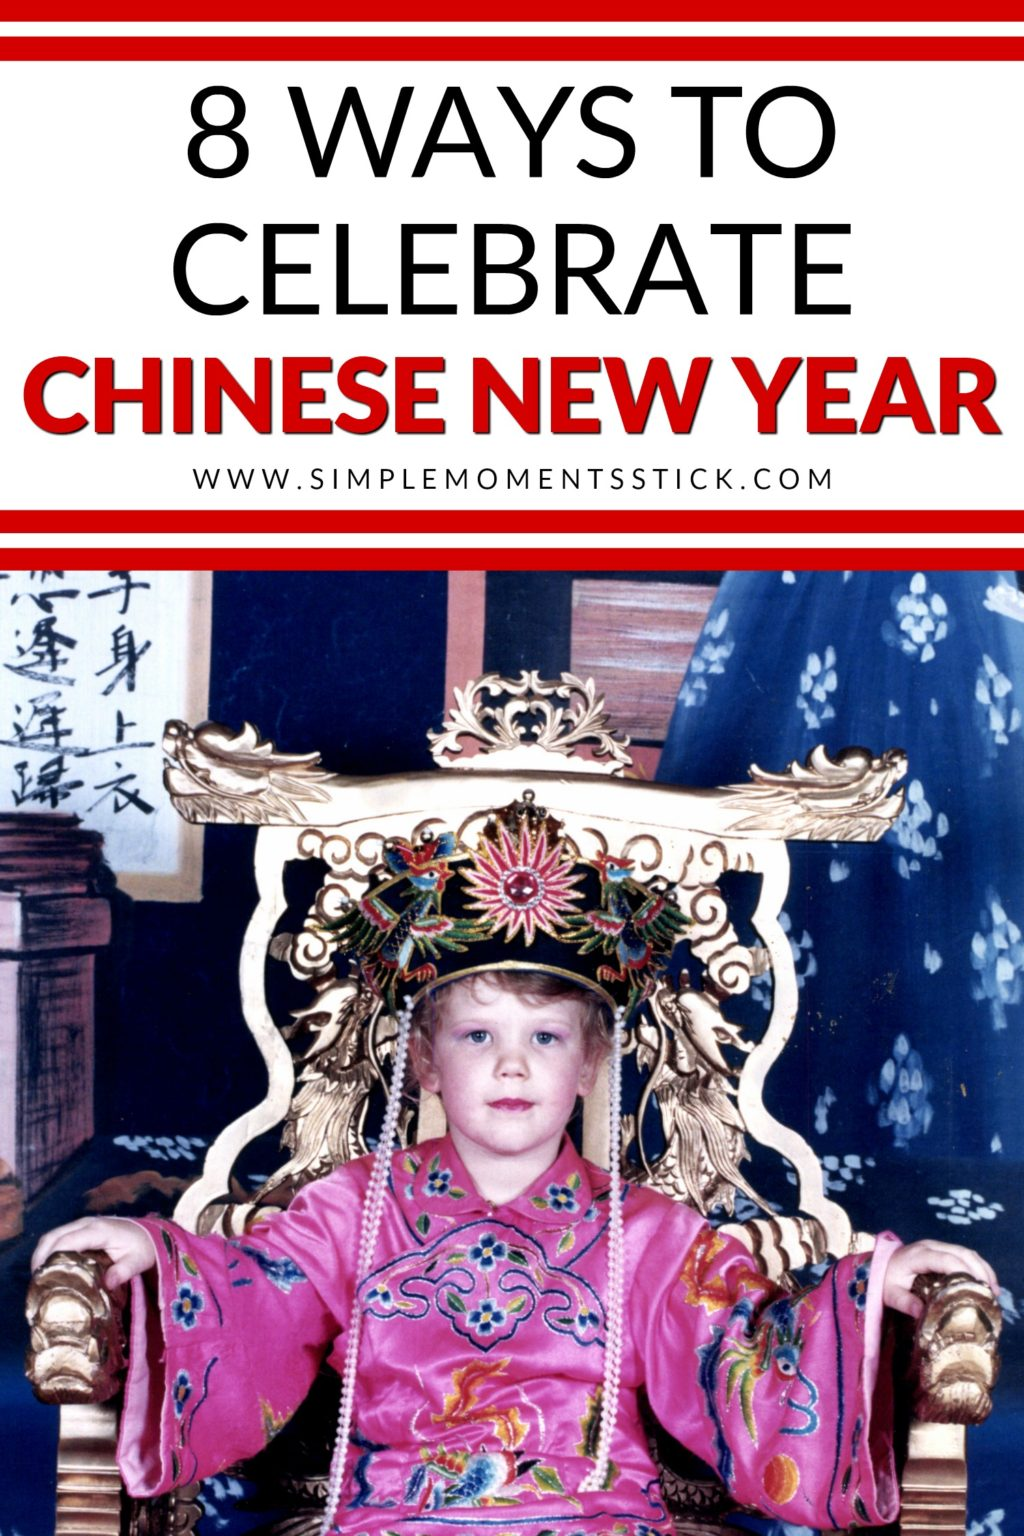 Are you looking for tips on how to celebrate Chinese New Year? This post has you covered! You'll learn some great Chinese New Year activities, Chinese New Year food, and so much more!